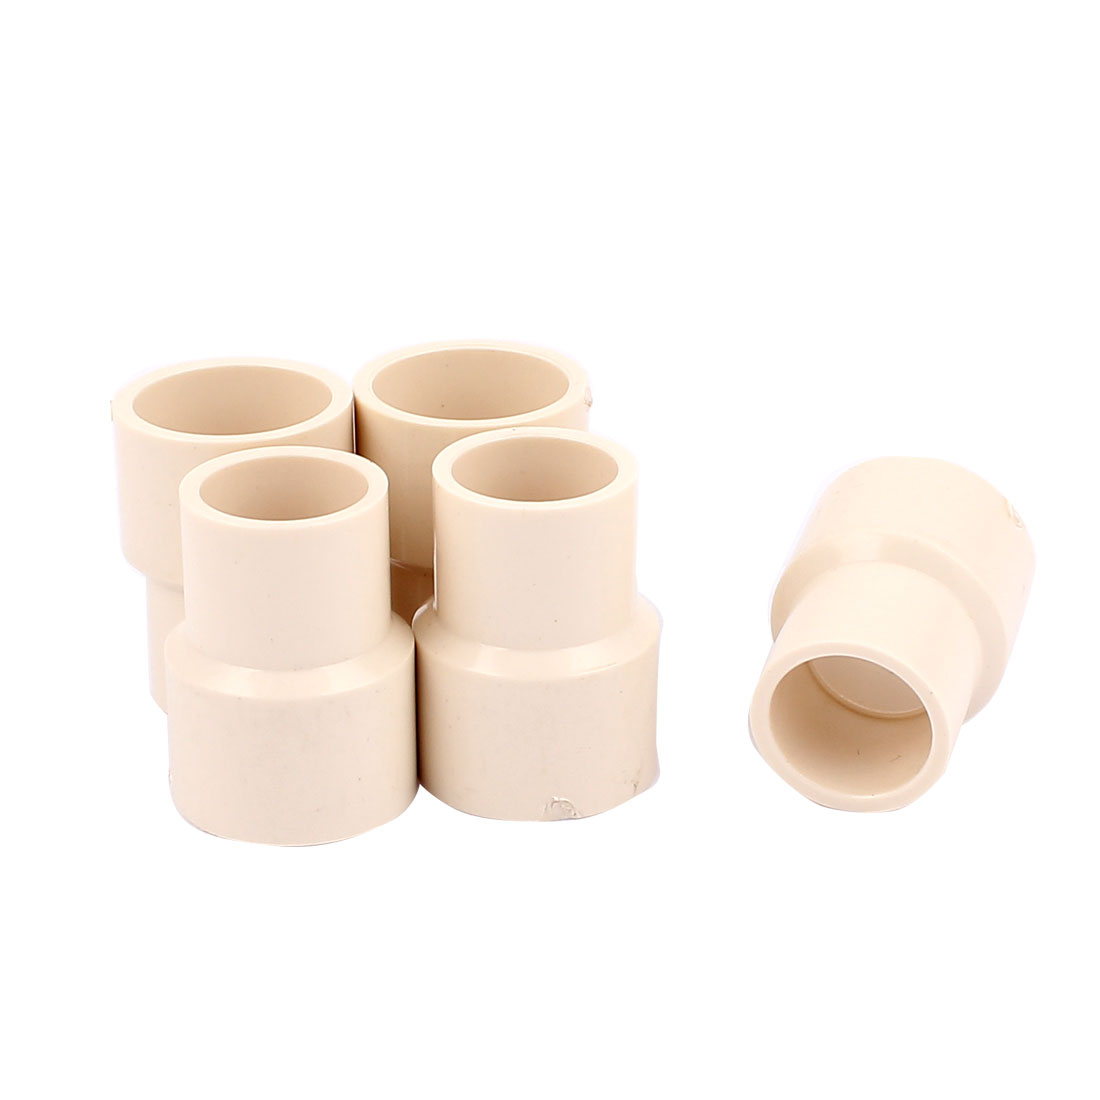 "5Pcs 25 x 20mm/0.98"" x 0.79"" Straight PVC Pipe Connectors Fittings White"